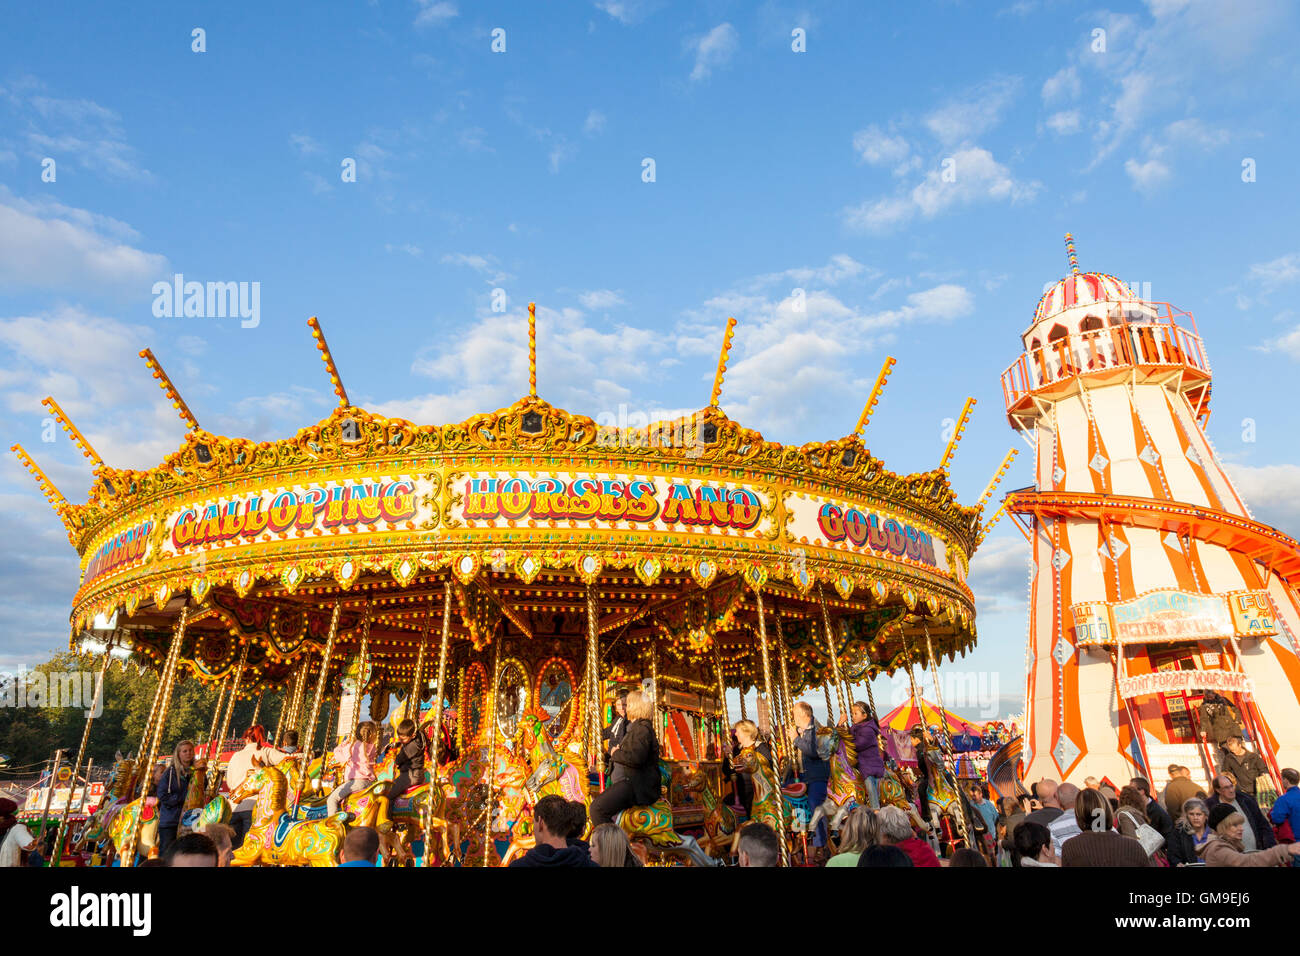 Traditional funfair rides. A merry go round and helter skelter at Goose Fair, Nottingham, England, UK Stock Photo